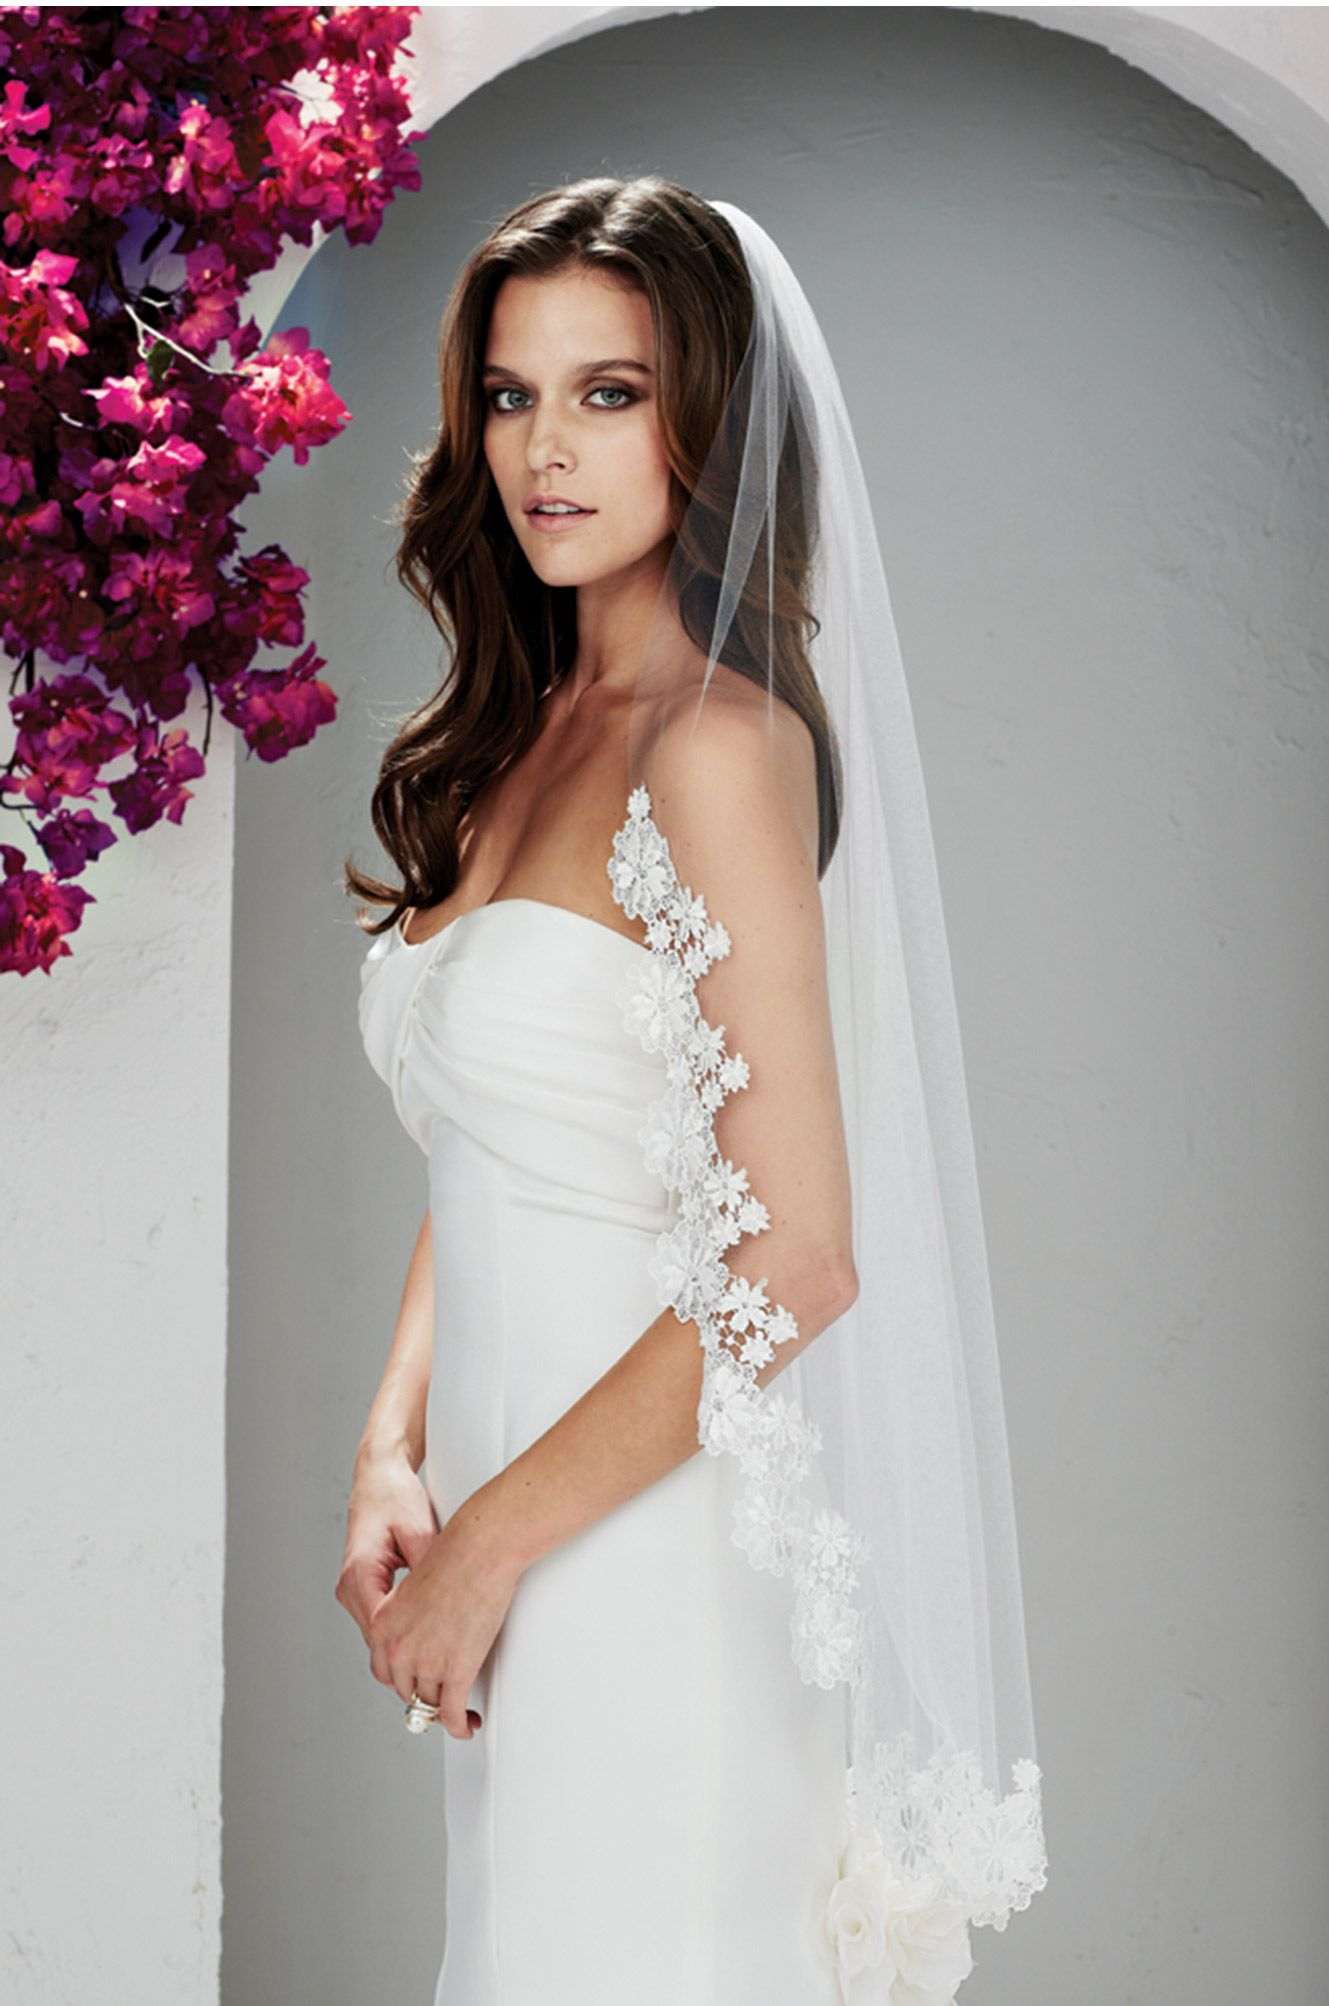 Finished Edge 42 Lace Wedding Veil Beaded Alencon Lace Fingertip Length Veil with Pearls and Rhinestones